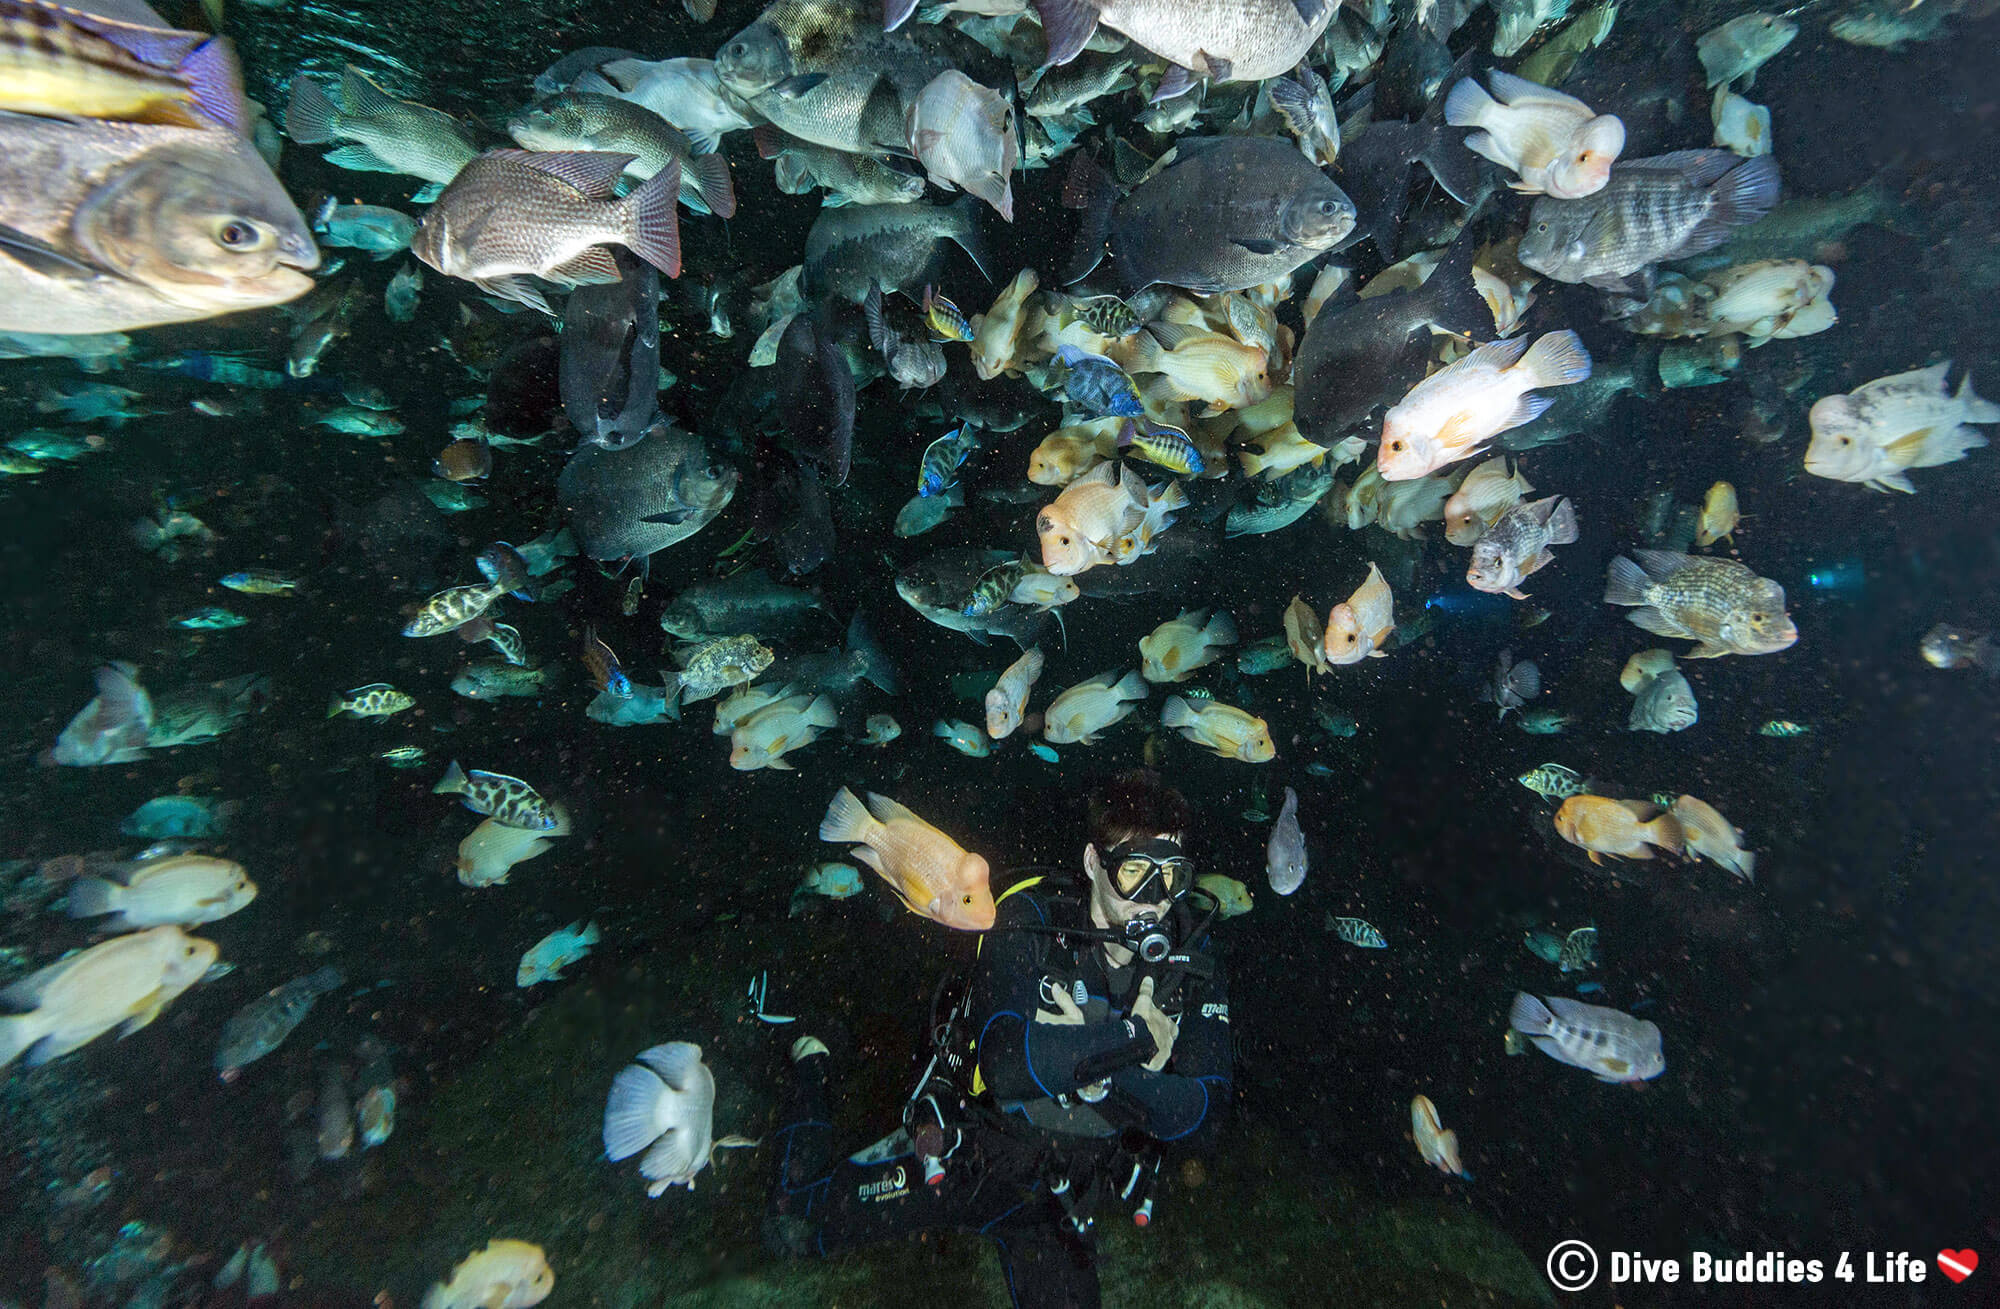 A Fish Tornado In The TODI Scuba Diving Facility In Belgium, Europe